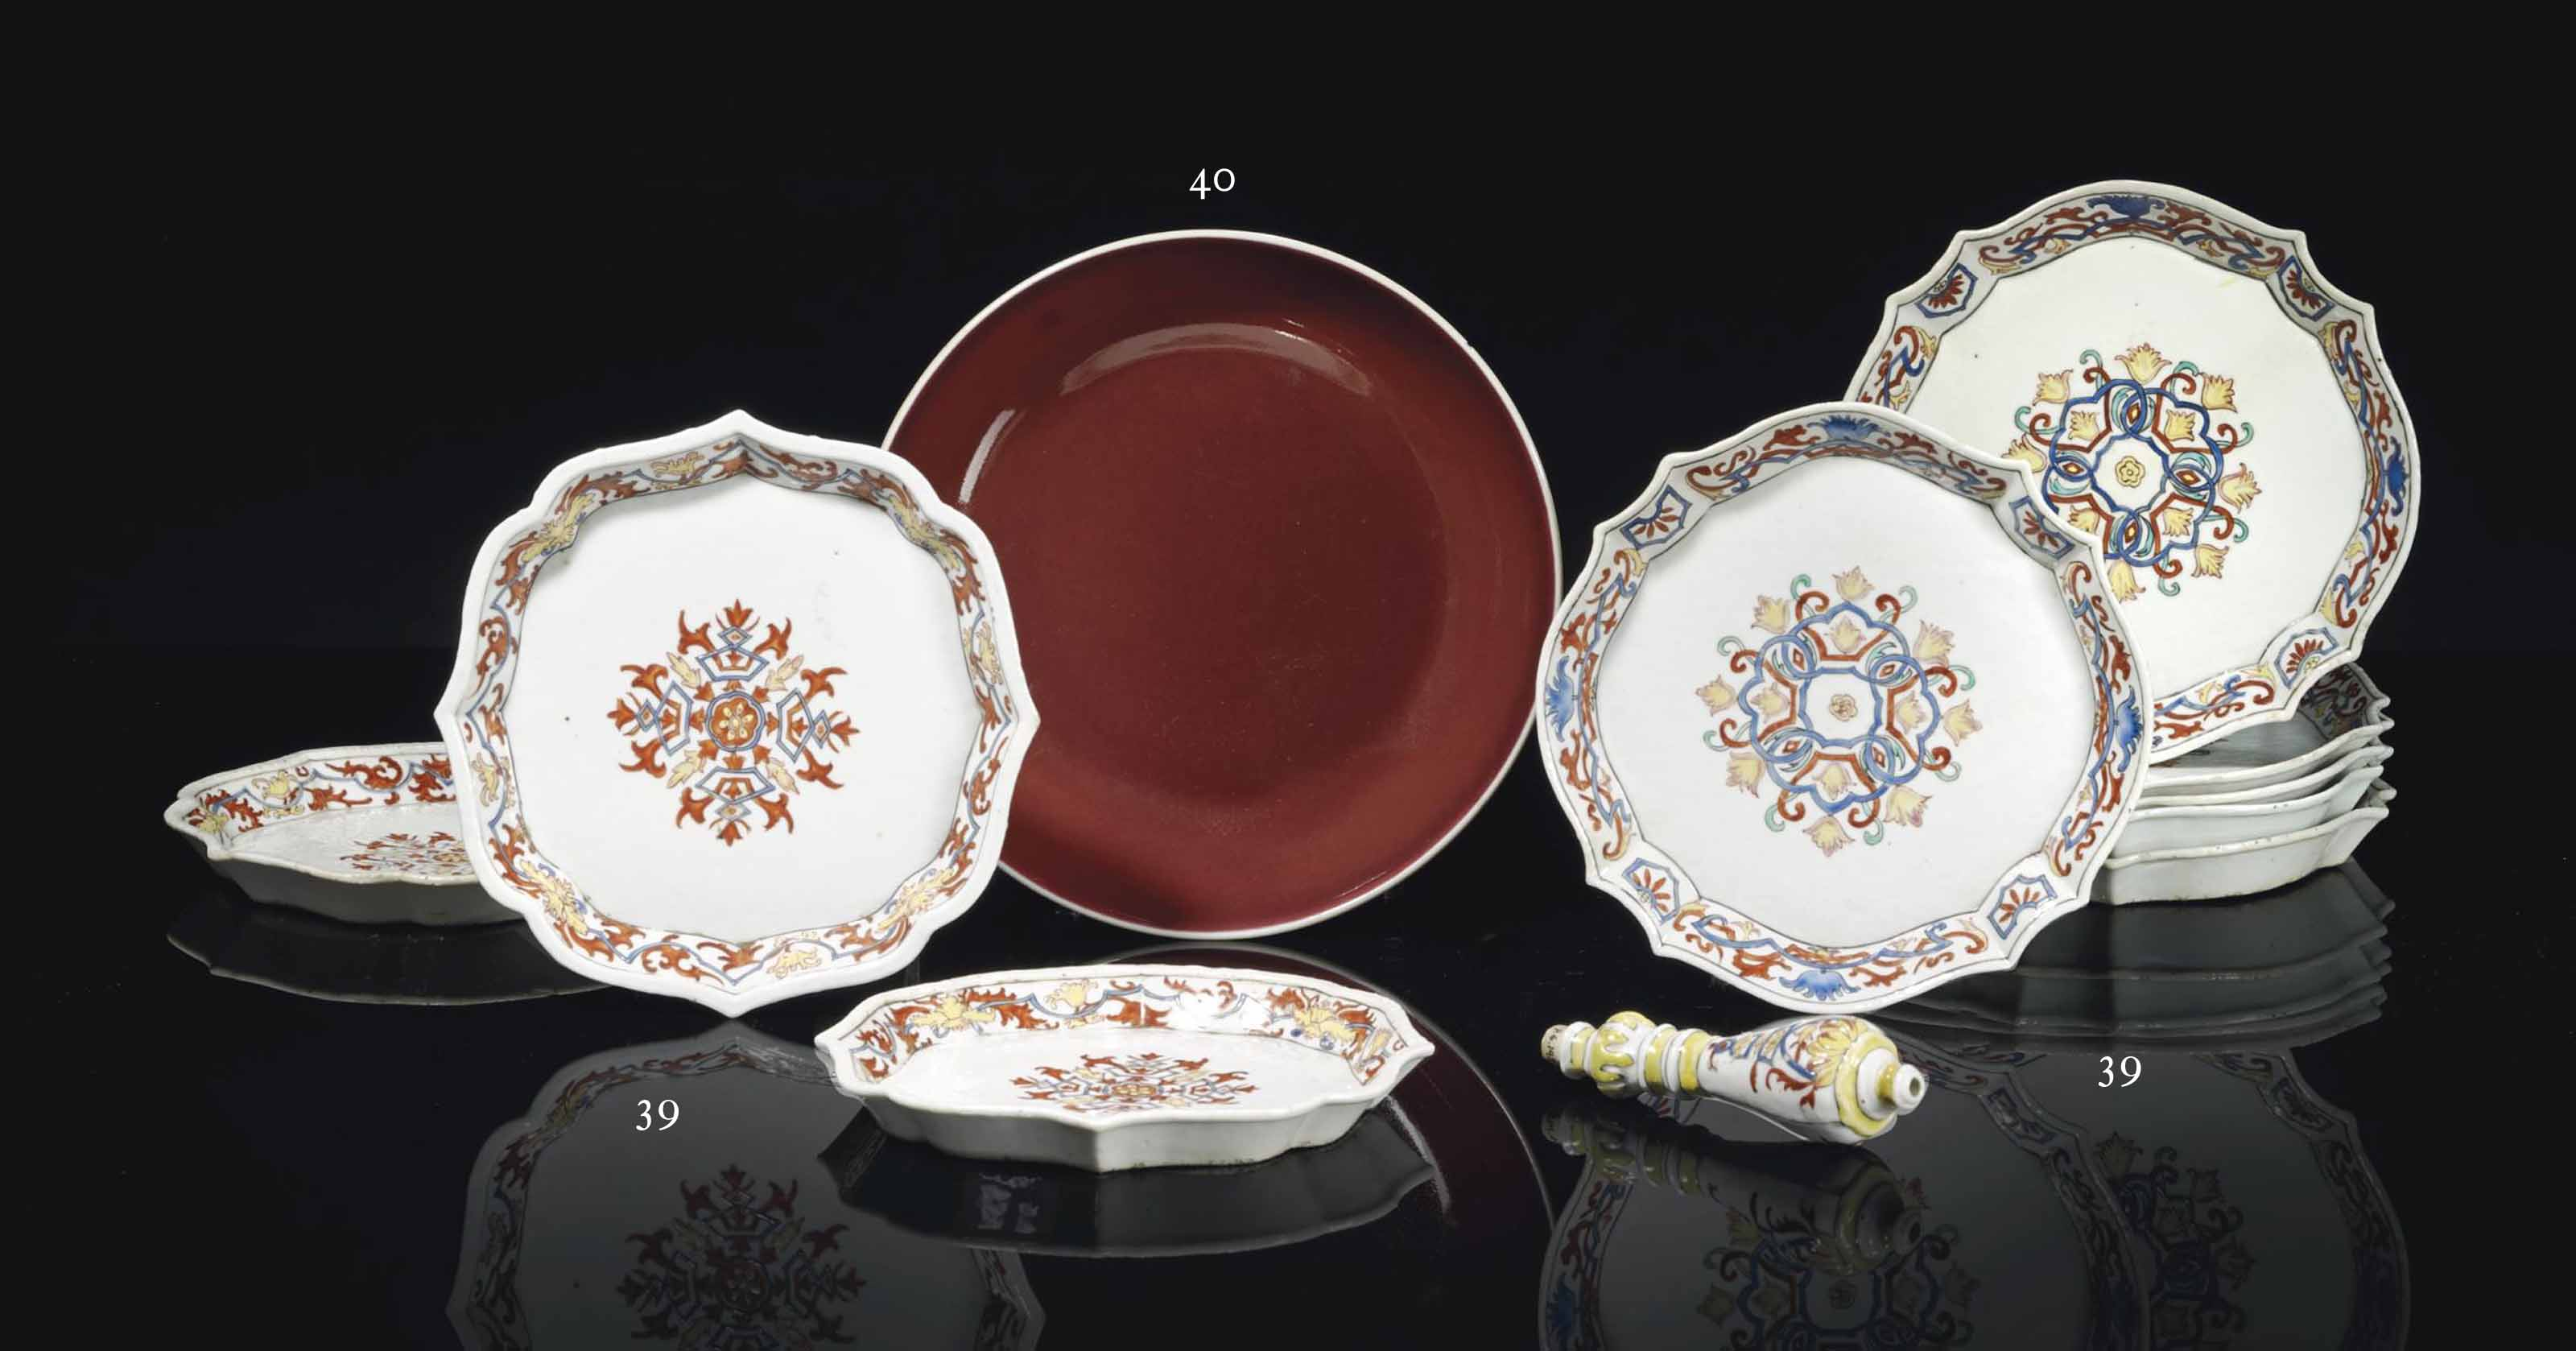 DIX PIECES EN PORCELAINE POLYC